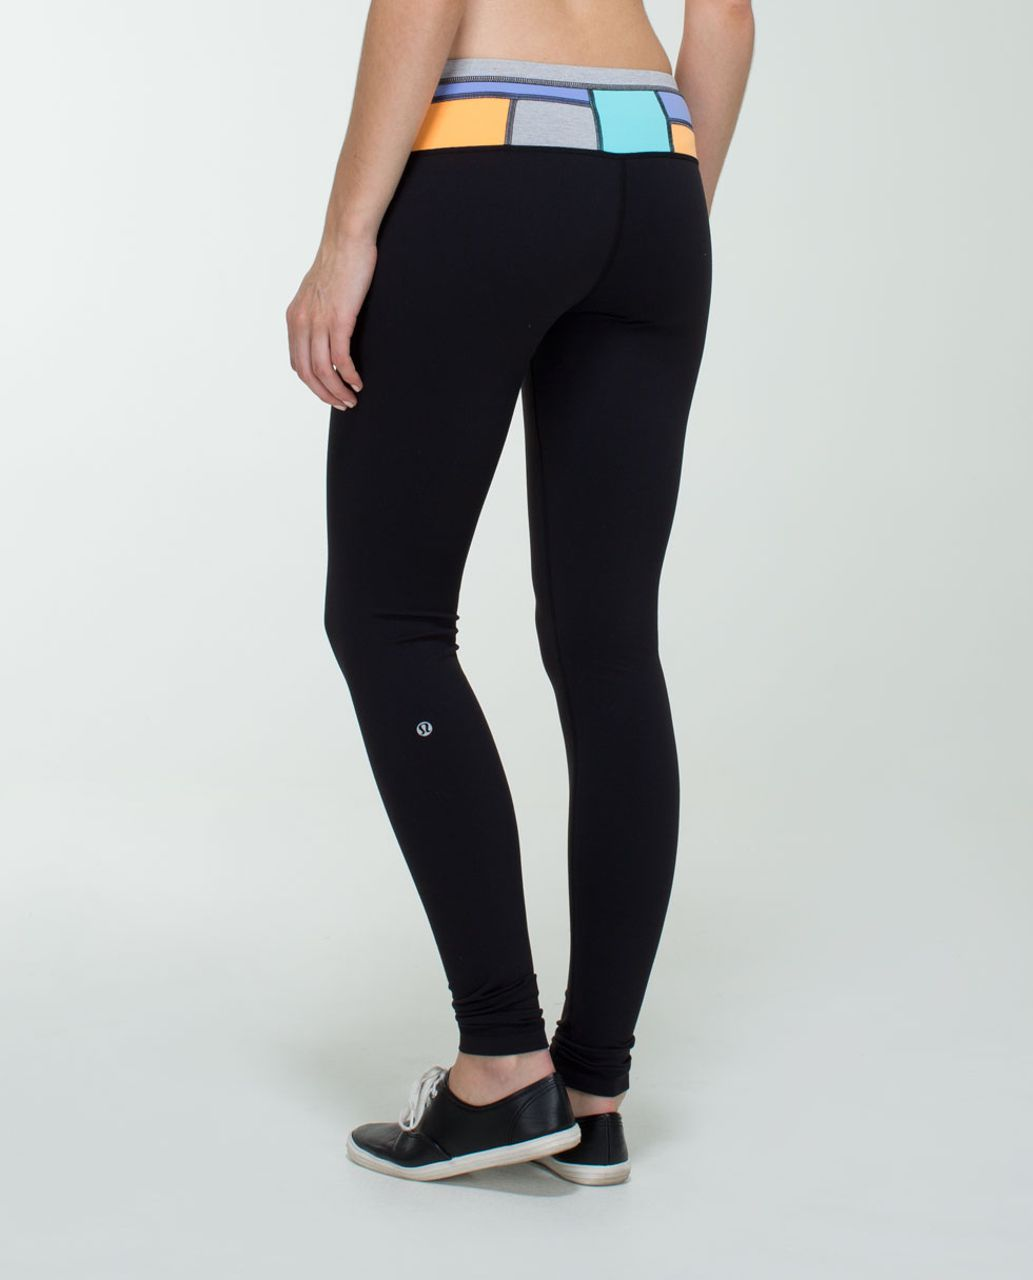 Lululemon Wunder Under Pant *Full-On Luon - Black / Quilt Spring 14-09